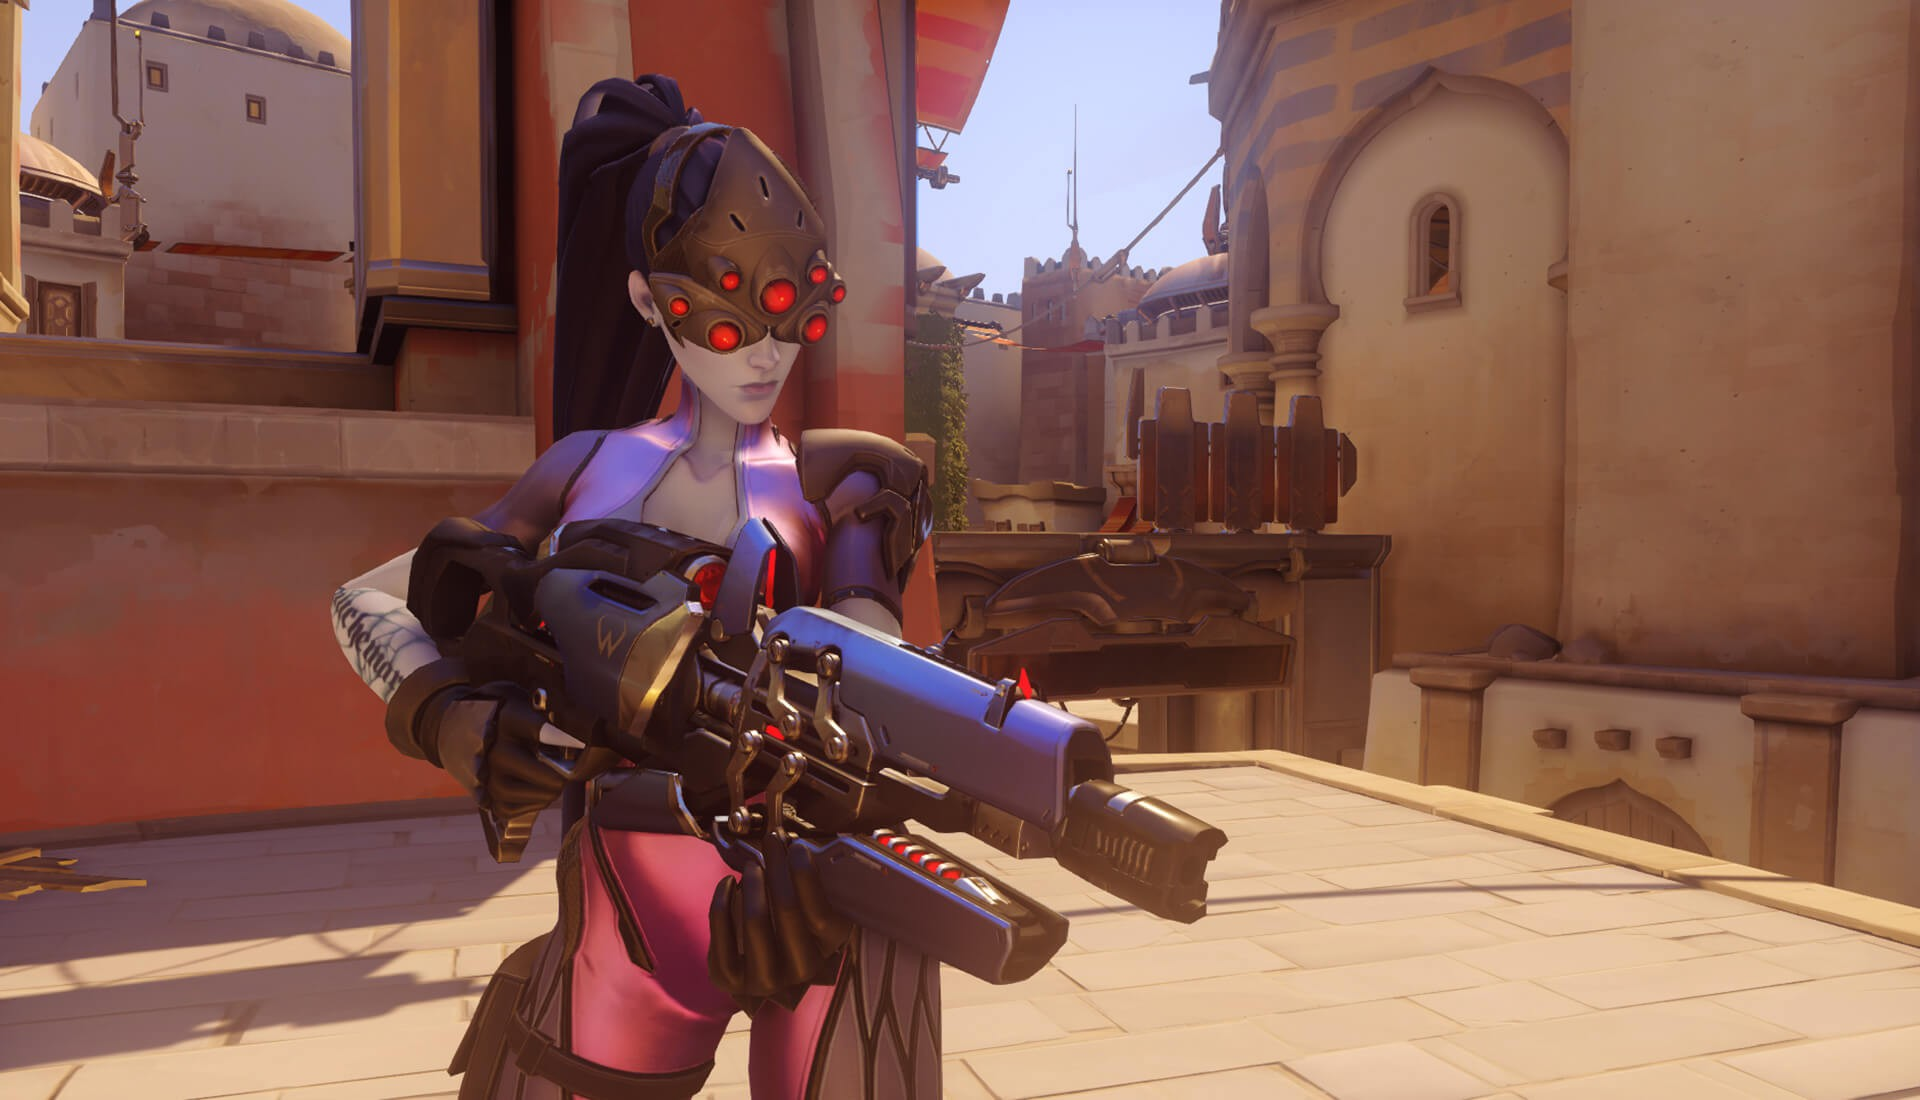 Account Boosting in Overwatch and more now illegal in South Korea